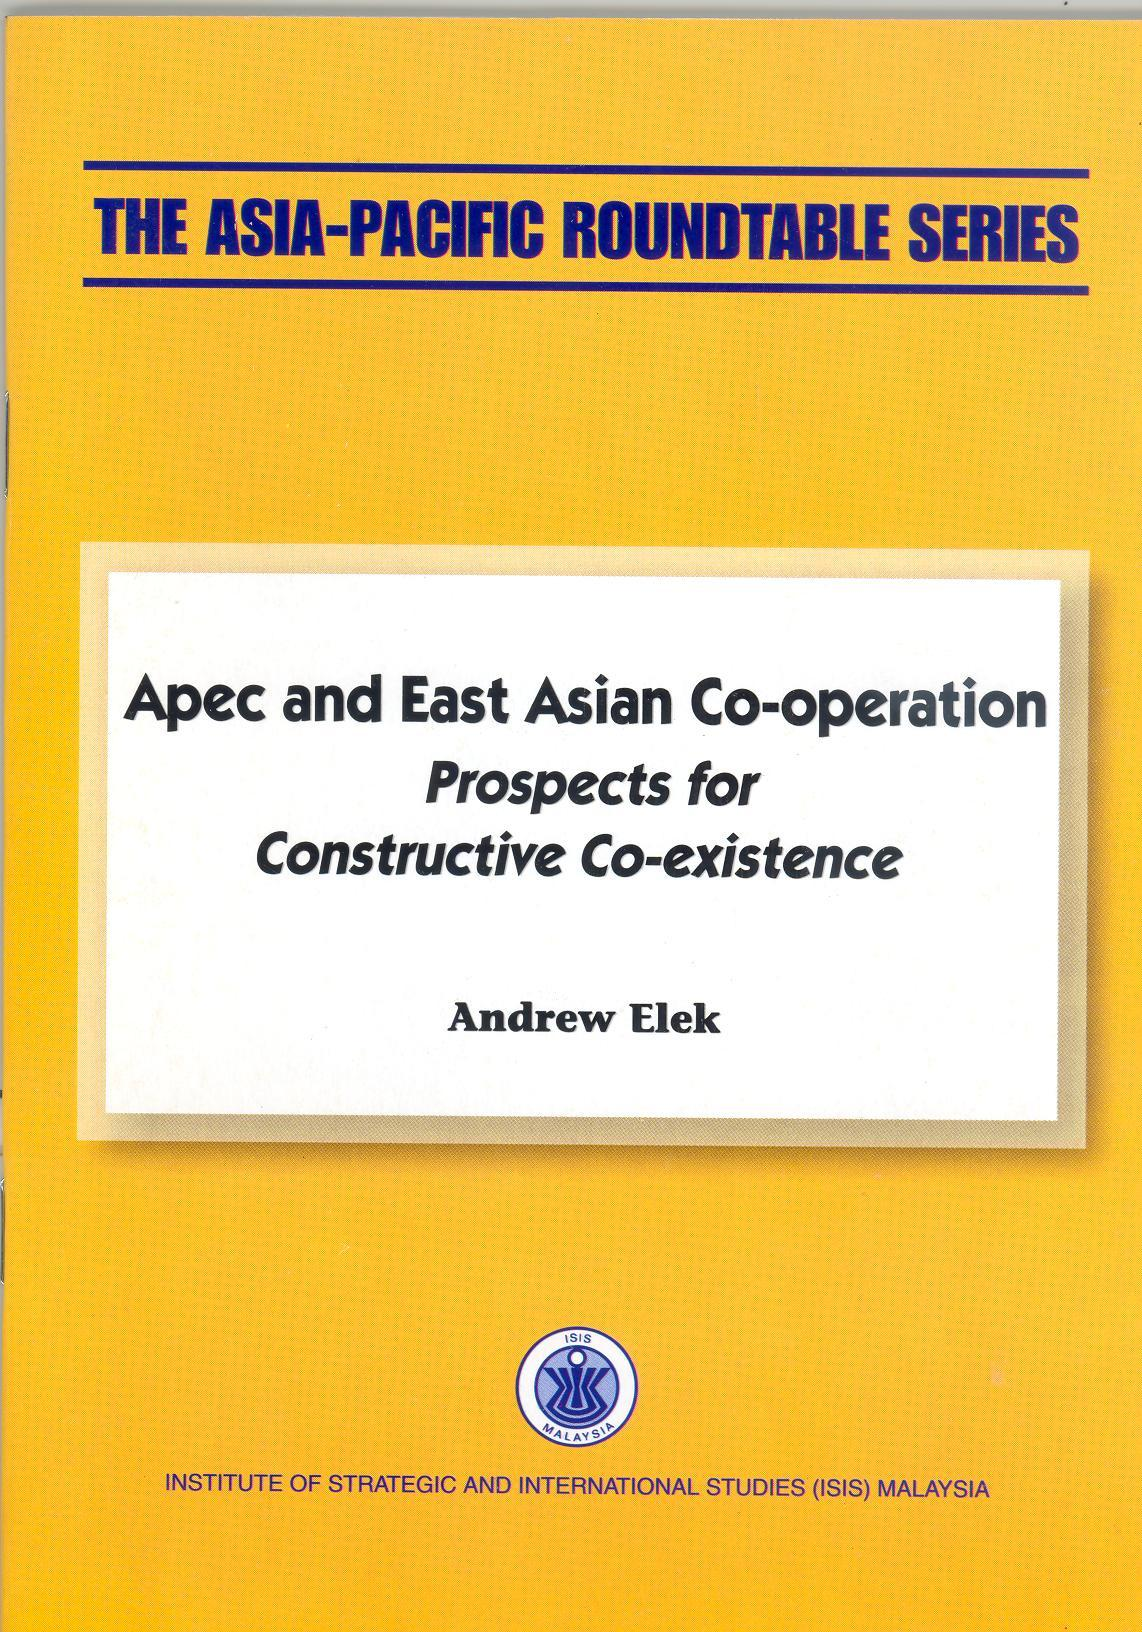 APEC AND EAST ASIAN CO-OPERATION